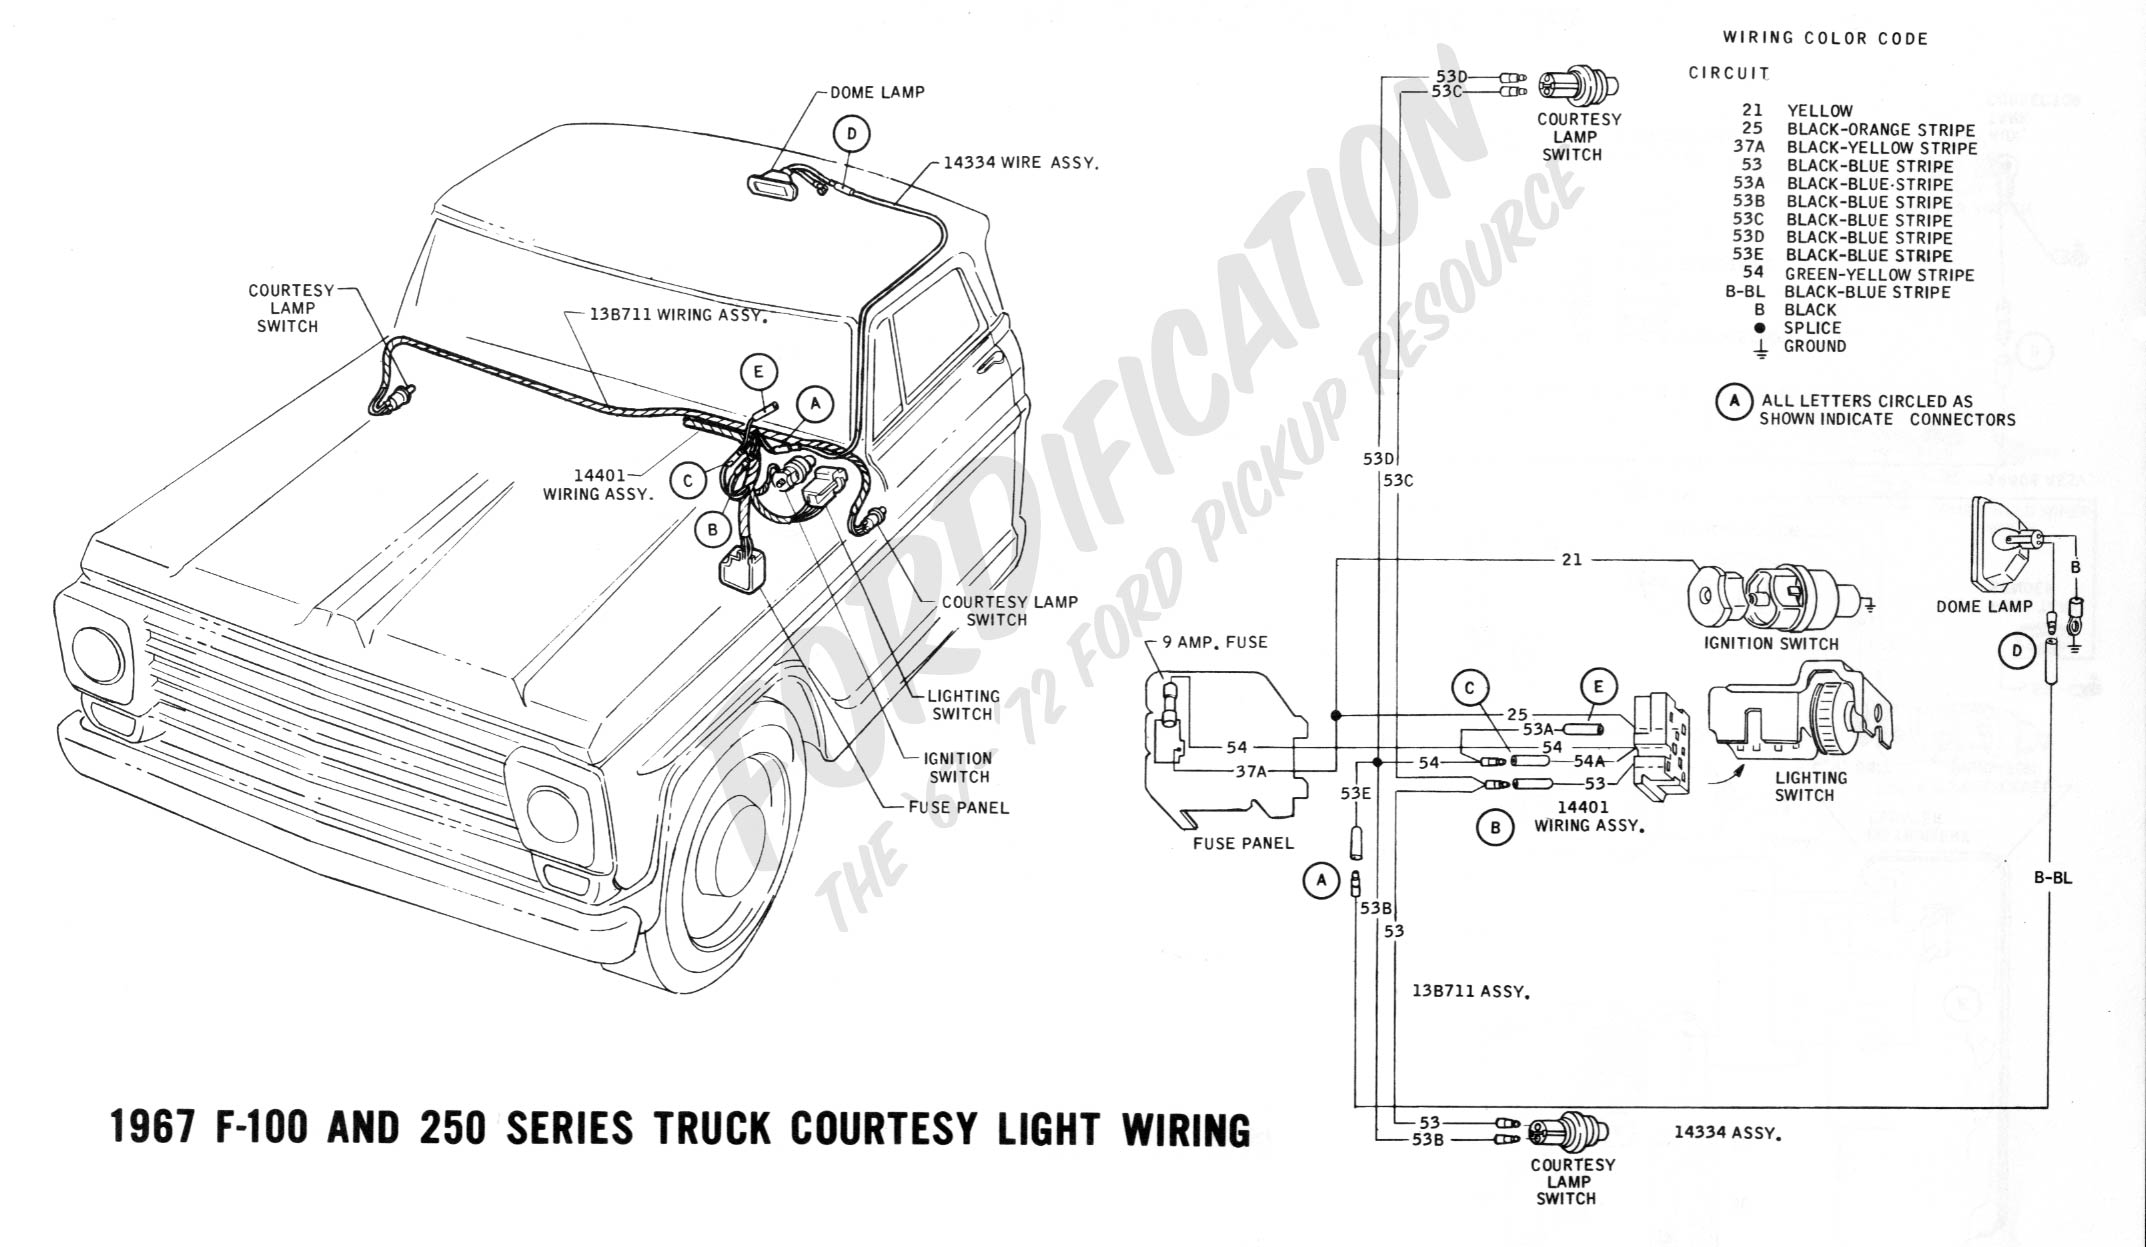 Wiring Diagram For Courtesy Light Schematics Diagrams 1997 Gmc Yukon Schematicdome Circuit Ford Truck Technical Drawings And Section H Dome Gm